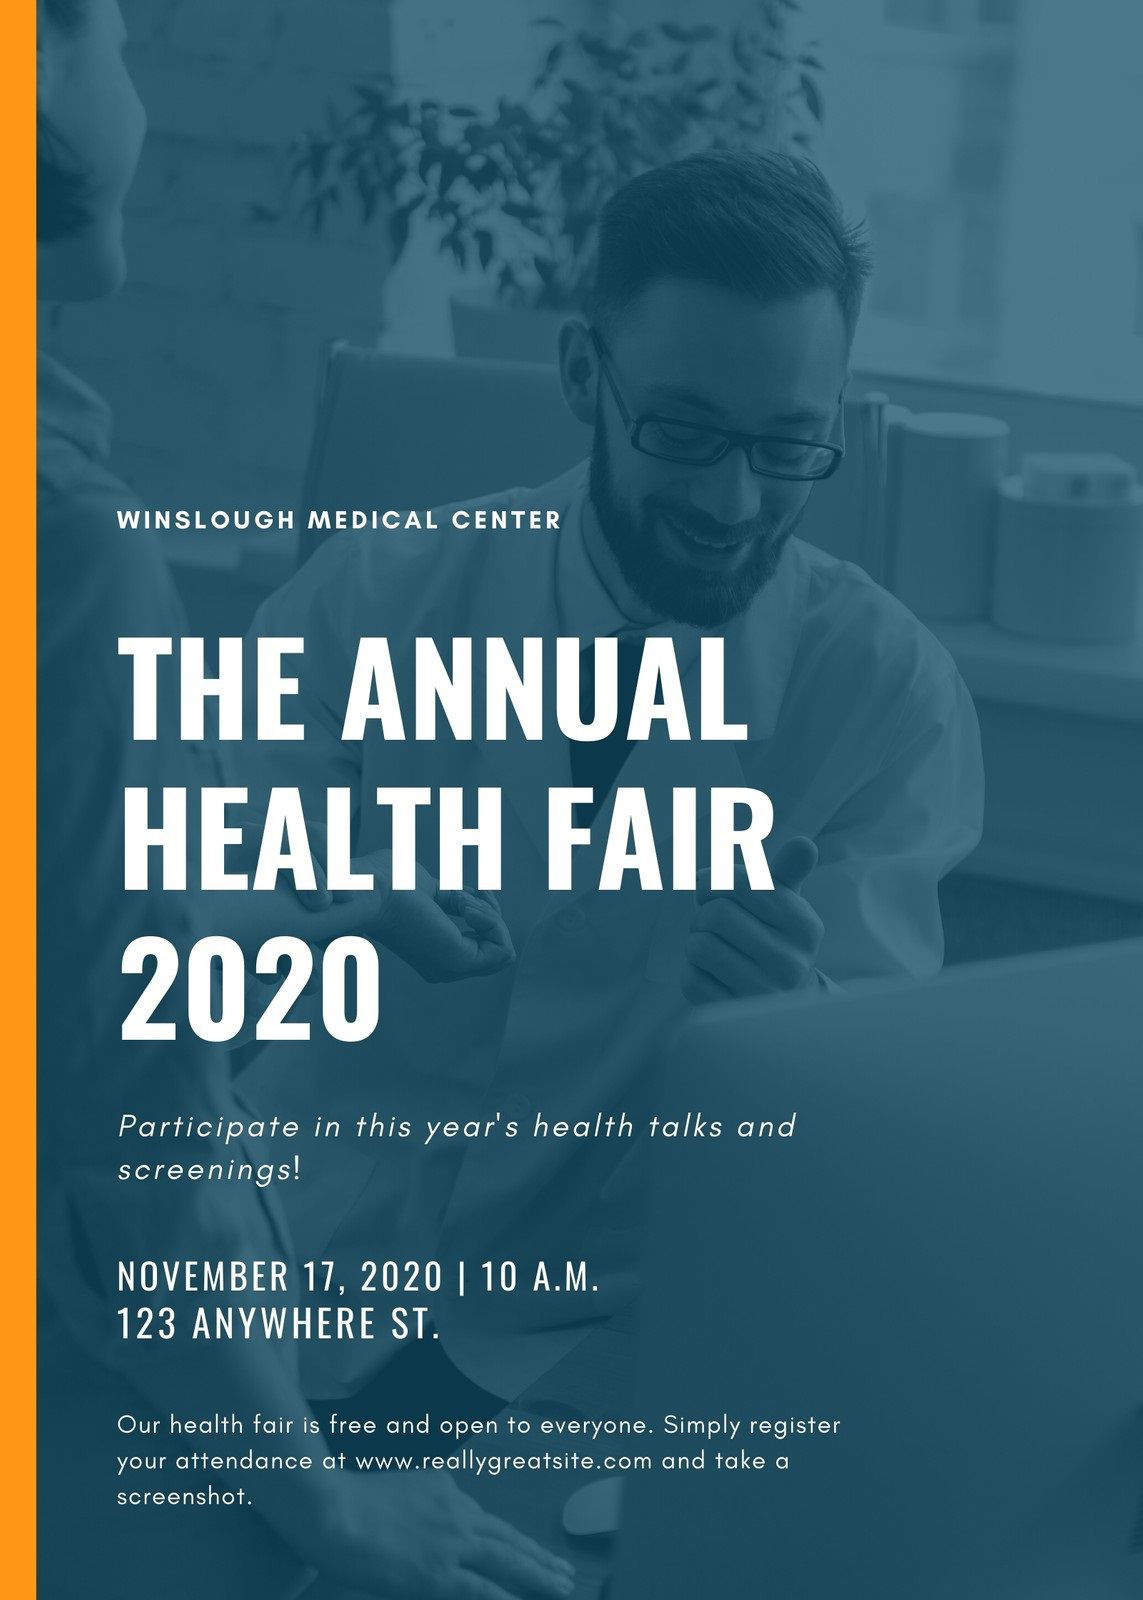 007 Phenomenal Health Fair Flyer Template High Definition  And Wellnes WordFull